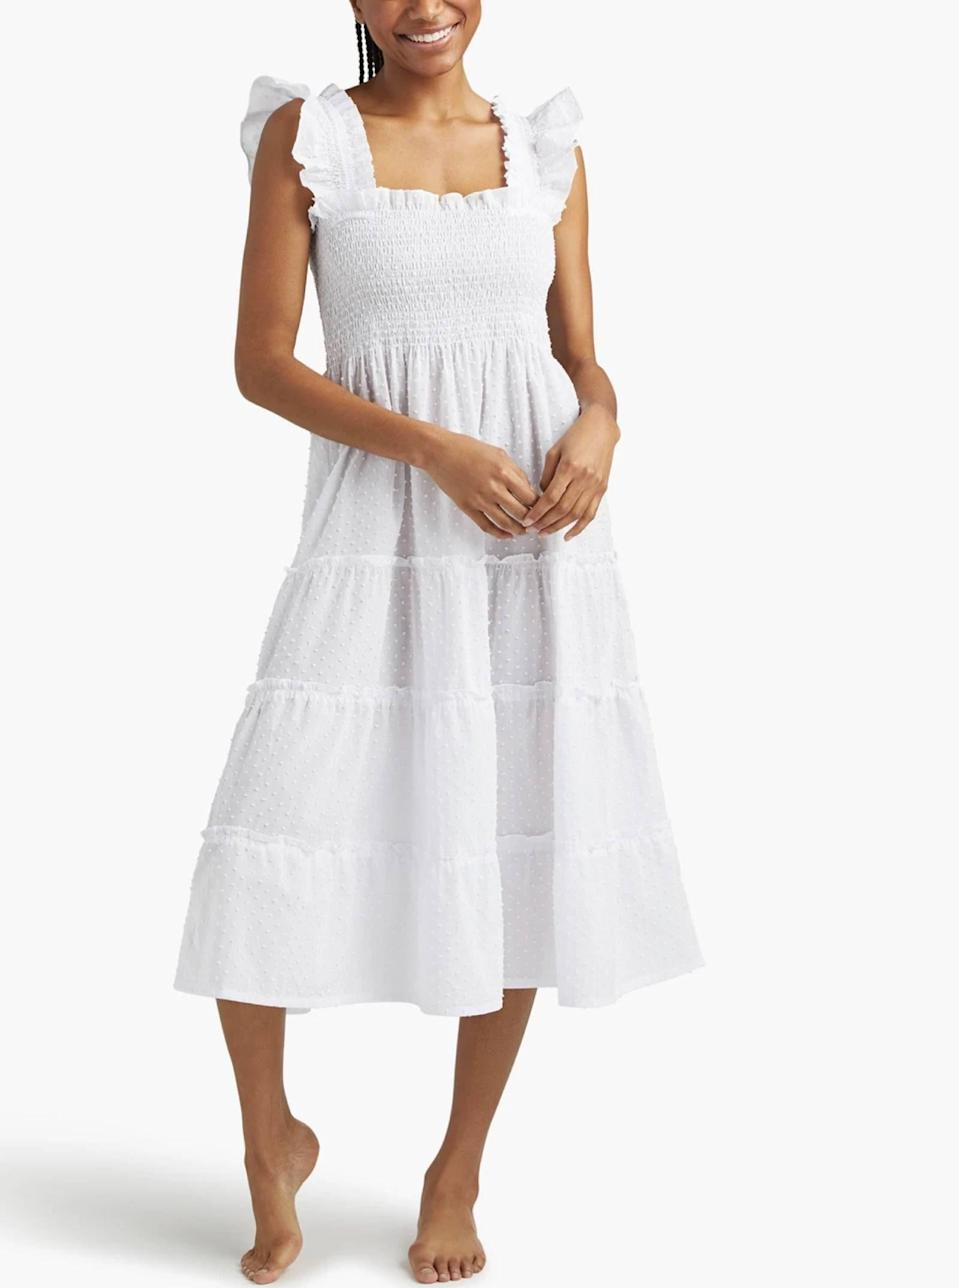 """$125, Hill House Home. <a href=""""https://www.hillhousehome.com/products/the-ellie-nap-dress-white-swiss-dot?"""" rel=""""nofollow noopener"""" target=""""_blank"""" data-ylk=""""slk:Get it now!"""" class=""""link rapid-noclick-resp"""">Get it now!</a>"""